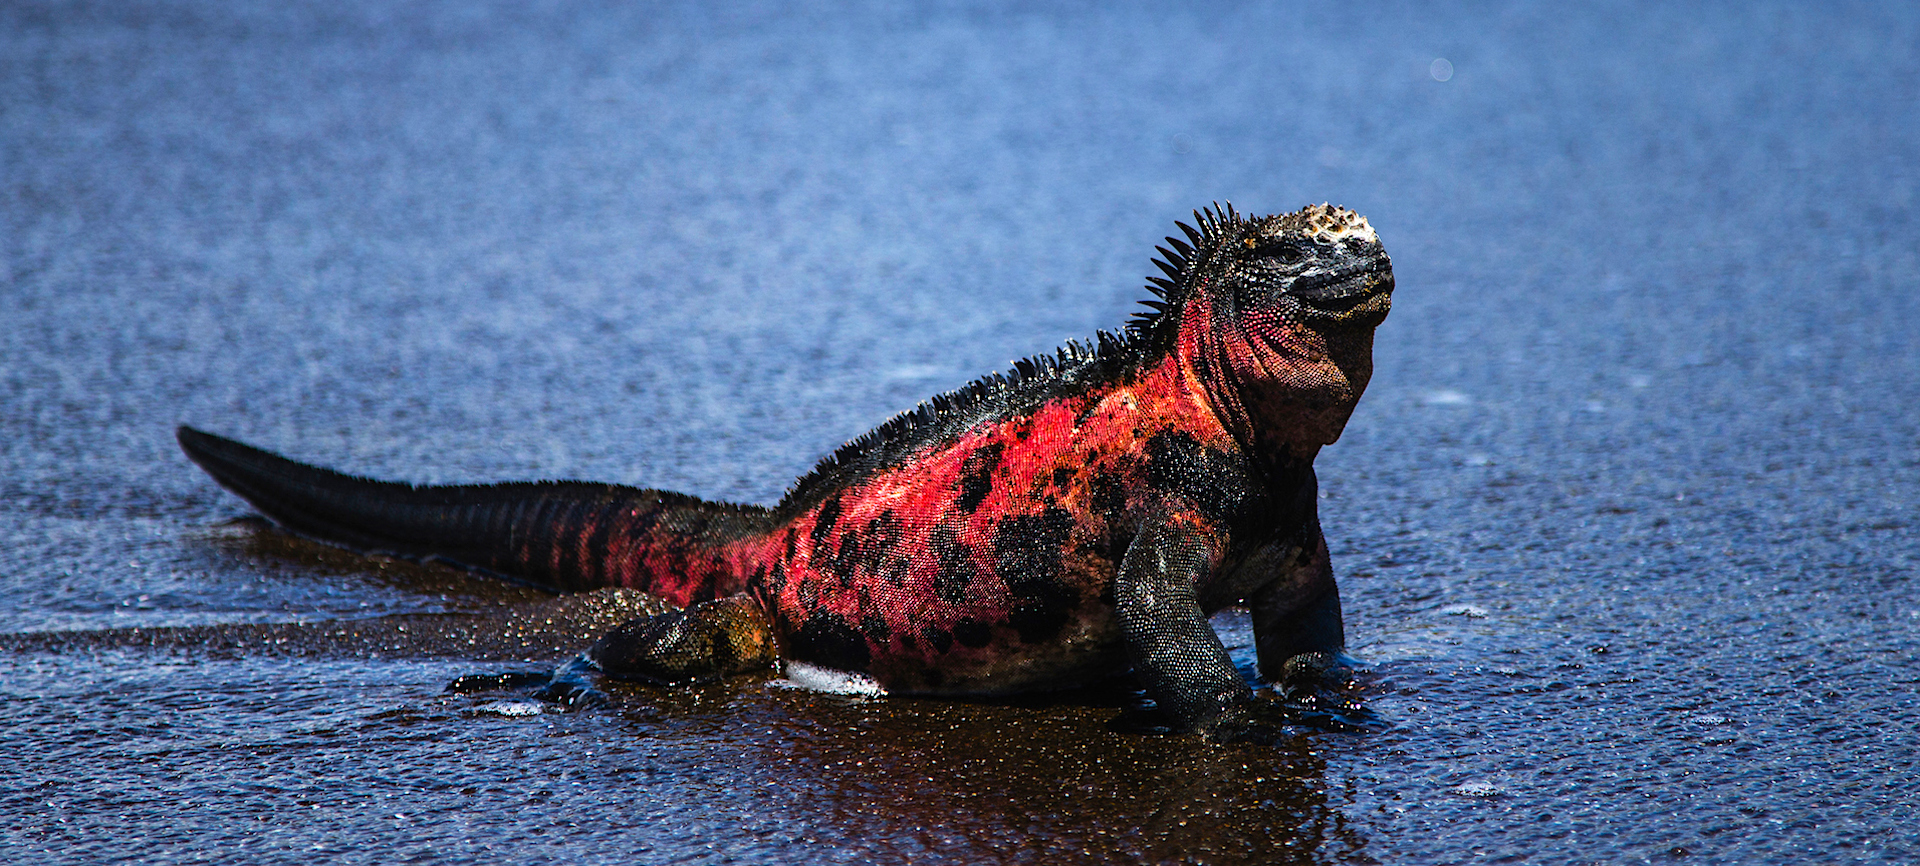 A marine Iguana sitting upright on a black sand beach